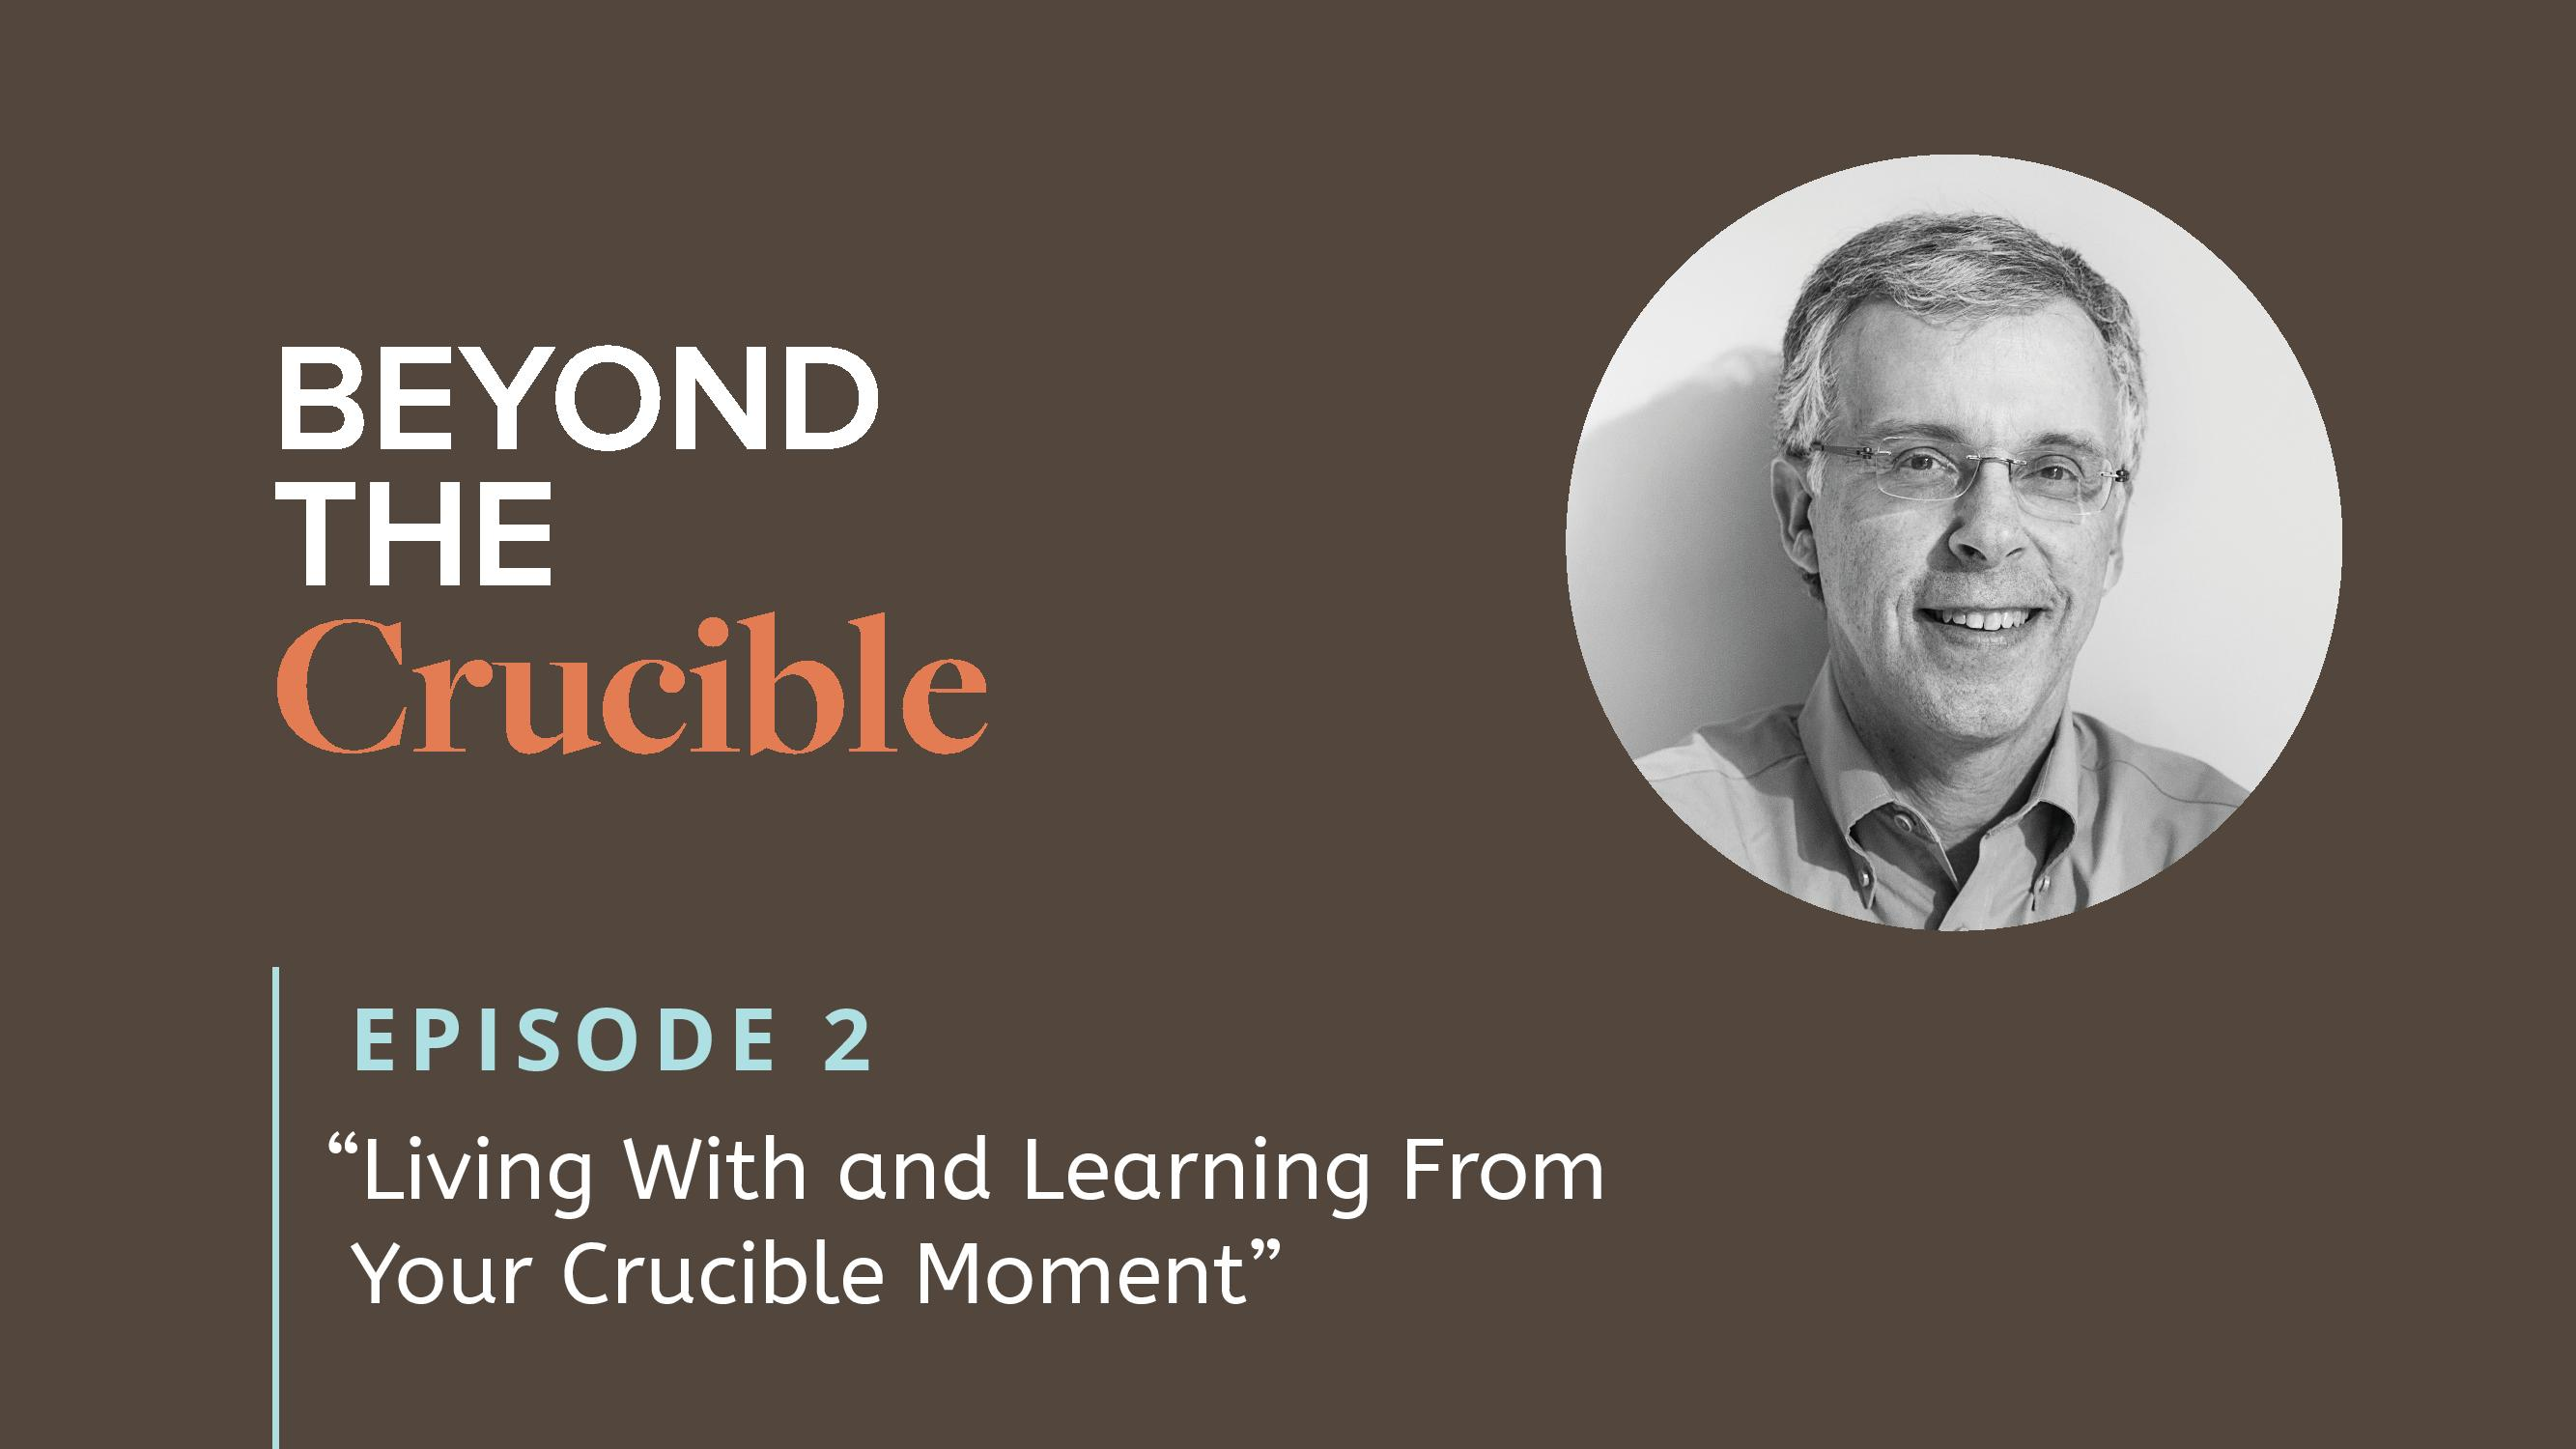 Living with and Learning From Your Crucible Moment